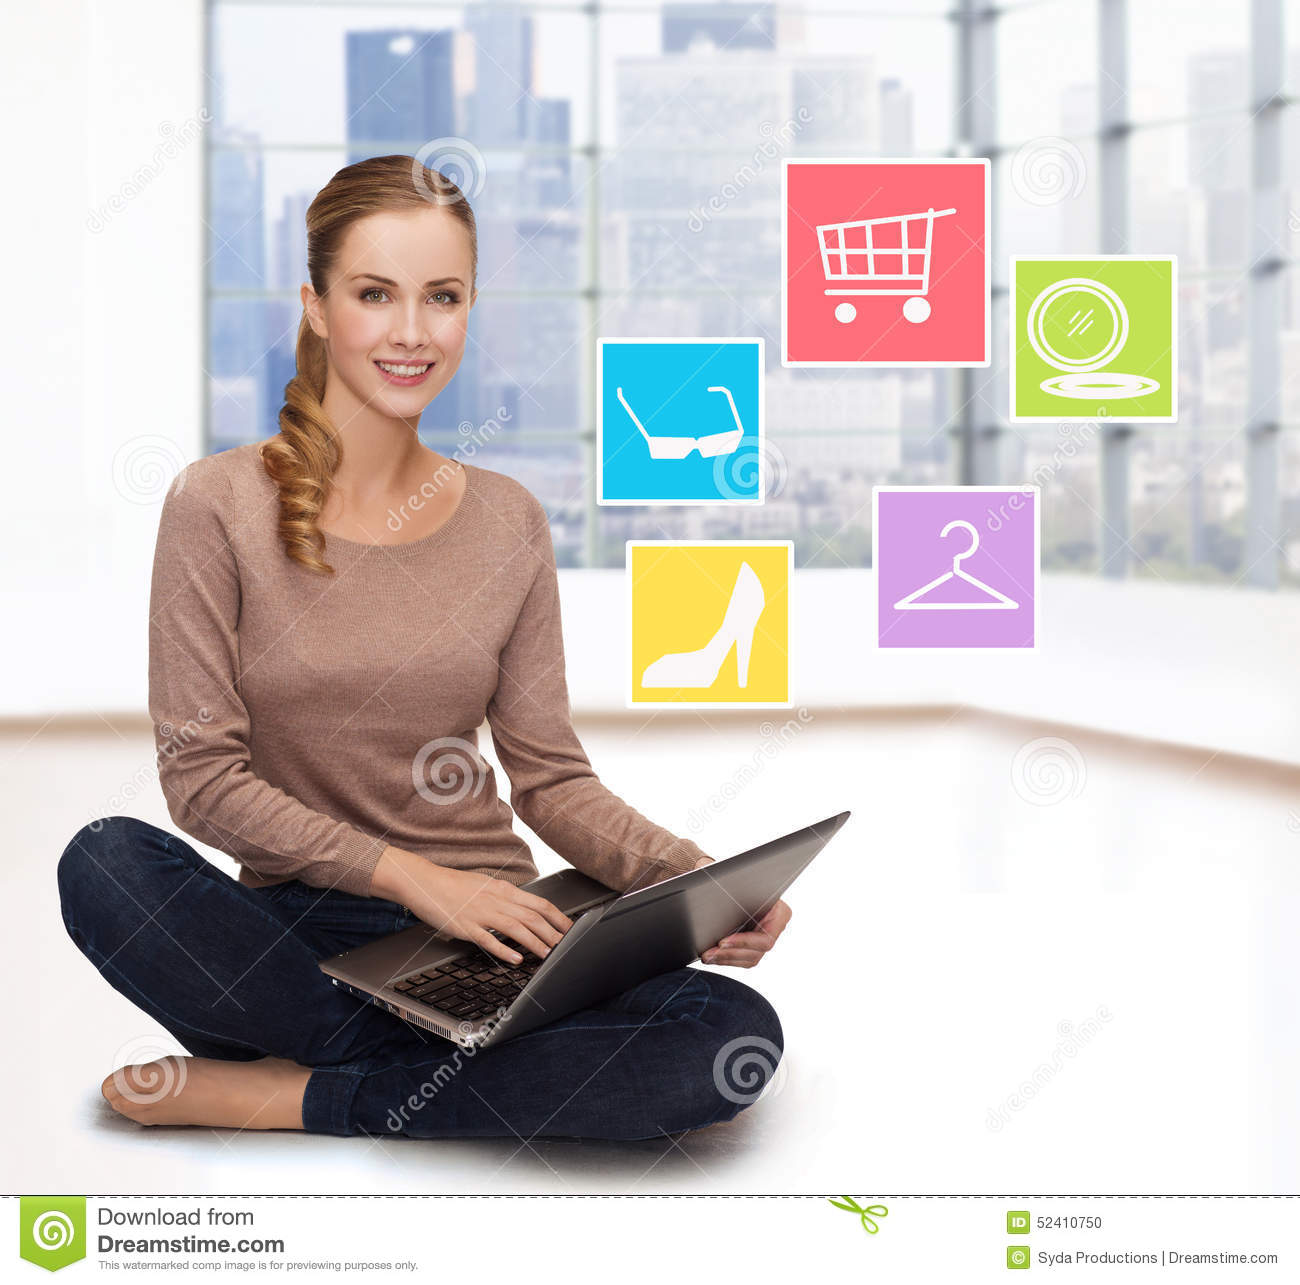 smiling-woman-laptop-shopping-online-home-fashion-sale-people-technology-concept-computer-52410750.jpg